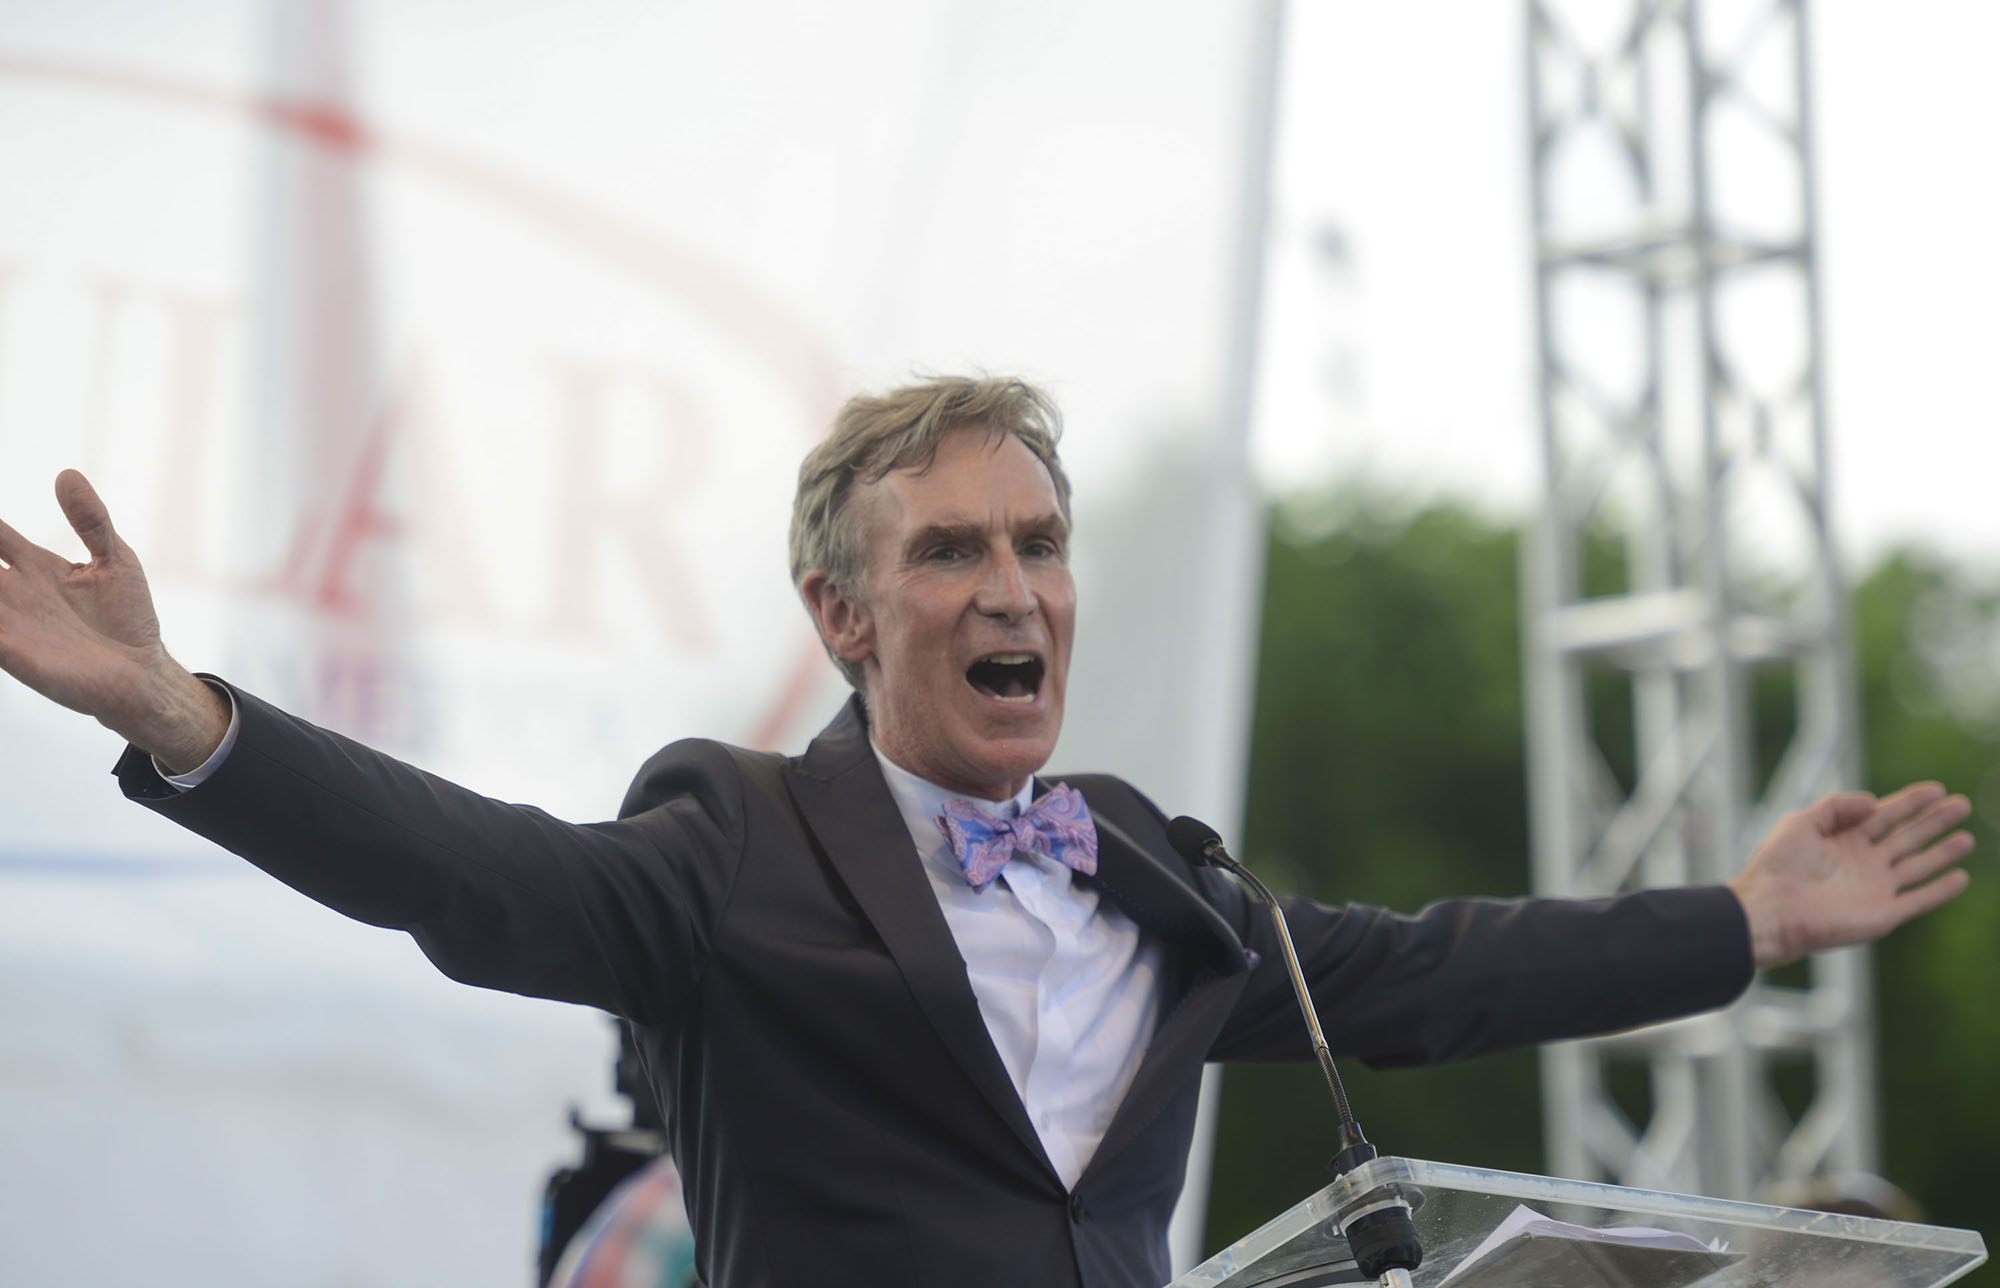 Bill Nye the Science Guy speaks at the Reason Rally 2016 at Lincoln Memorial on June 4, 2016 in Washington, DC.  (Photo by Riccardo S. Savi/Getty Images)